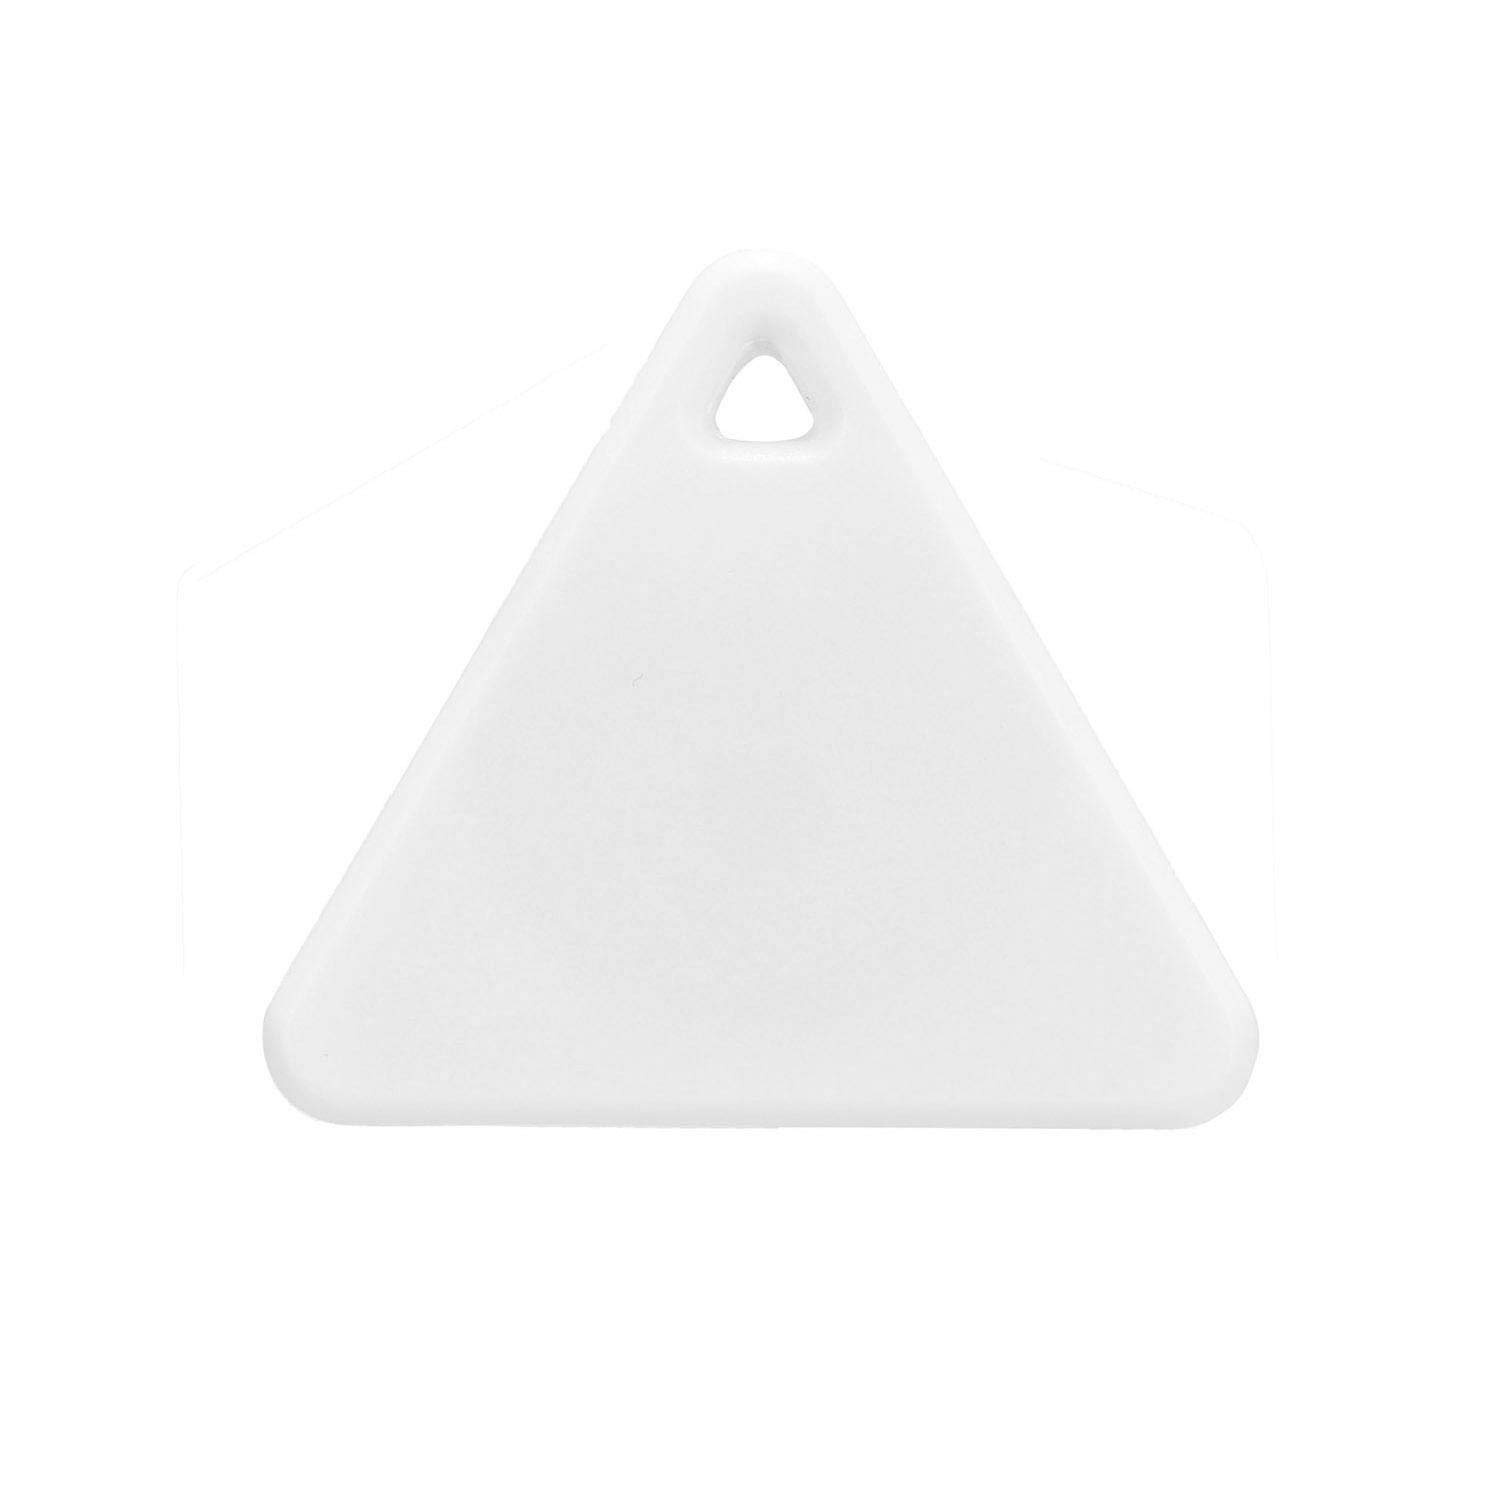 ONERIOME Ultra-Thin Triangle GPS Tracker Smart Mini Bluetooth Tag Tracker Key Wallet Pet Child Finder GPS Locator Alarm Baby Wearables for iOS Android Smartphone